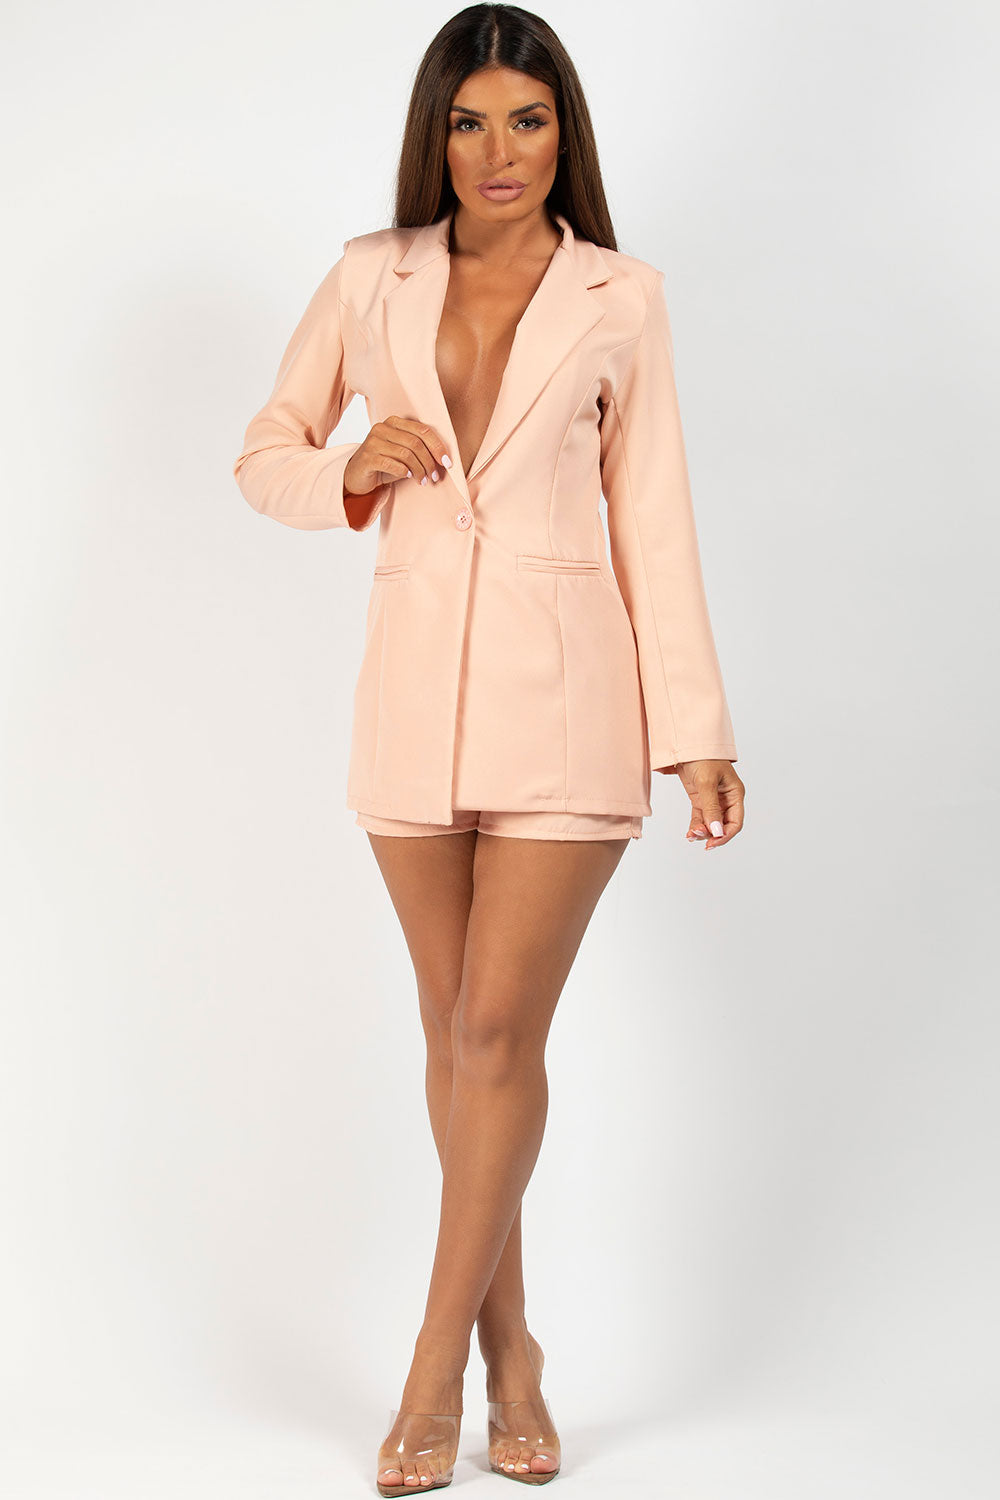 nude blazer and shorts co ord set